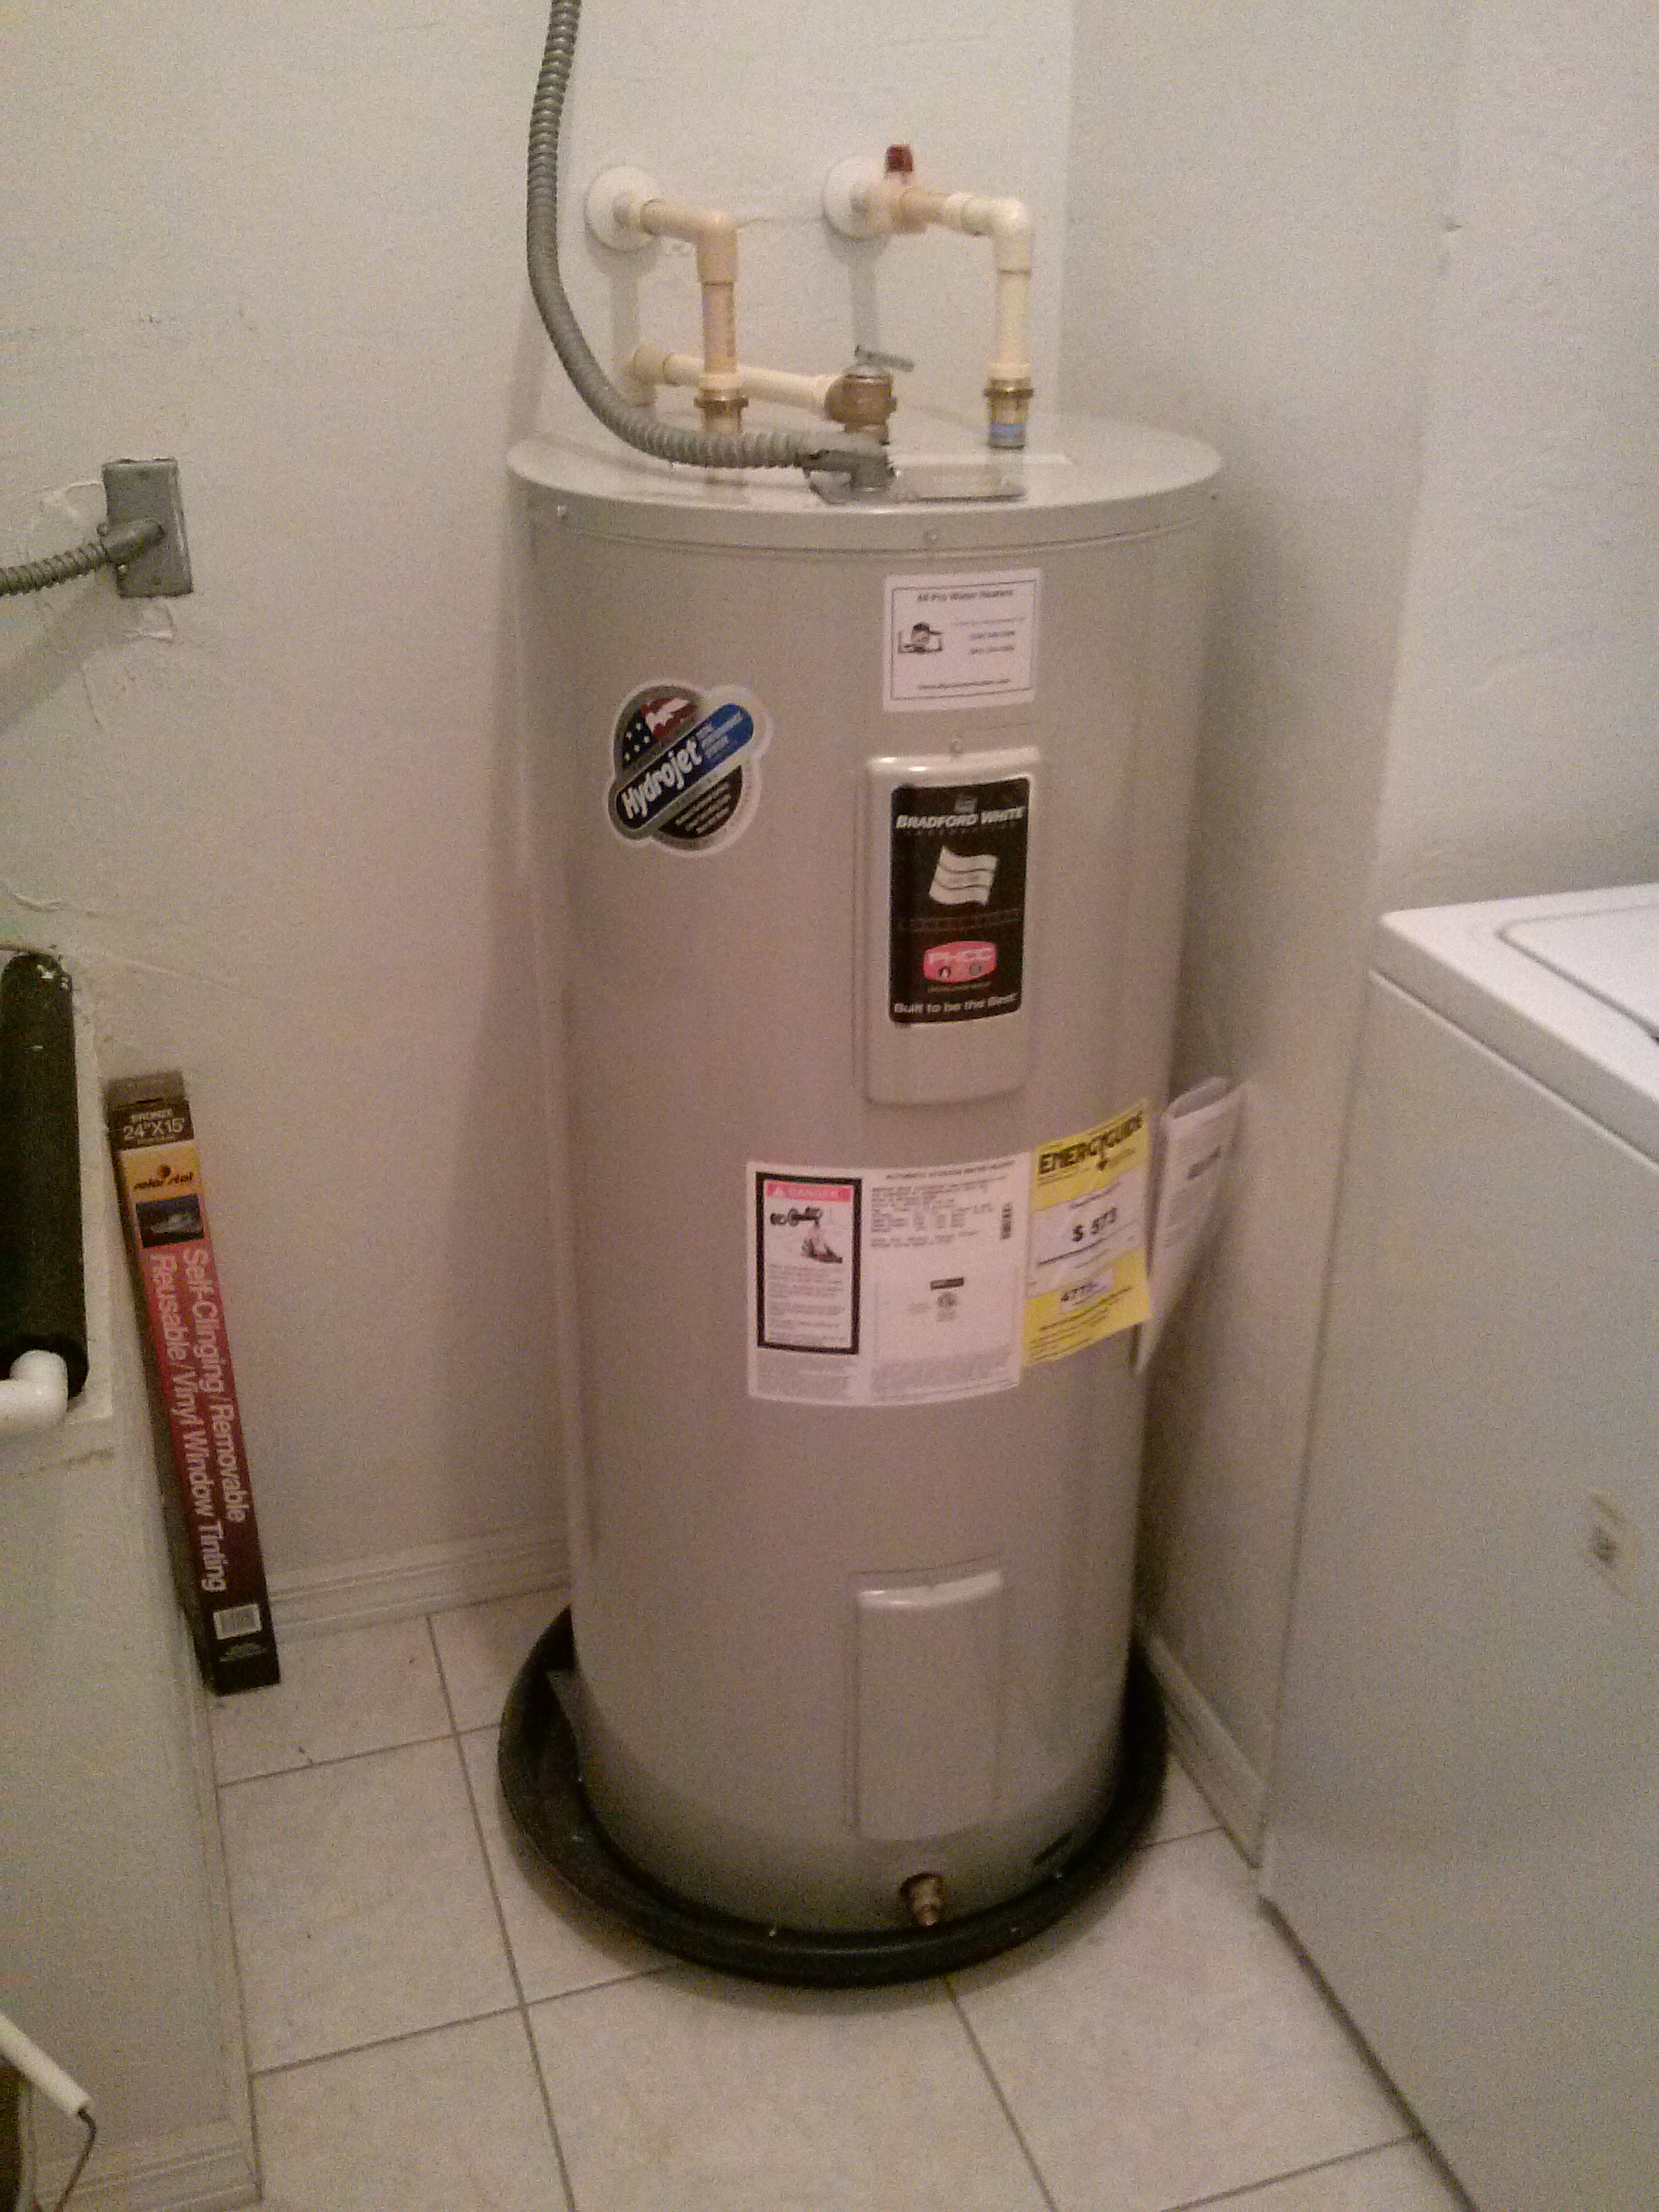 5 signs that you may have a leaking water heater